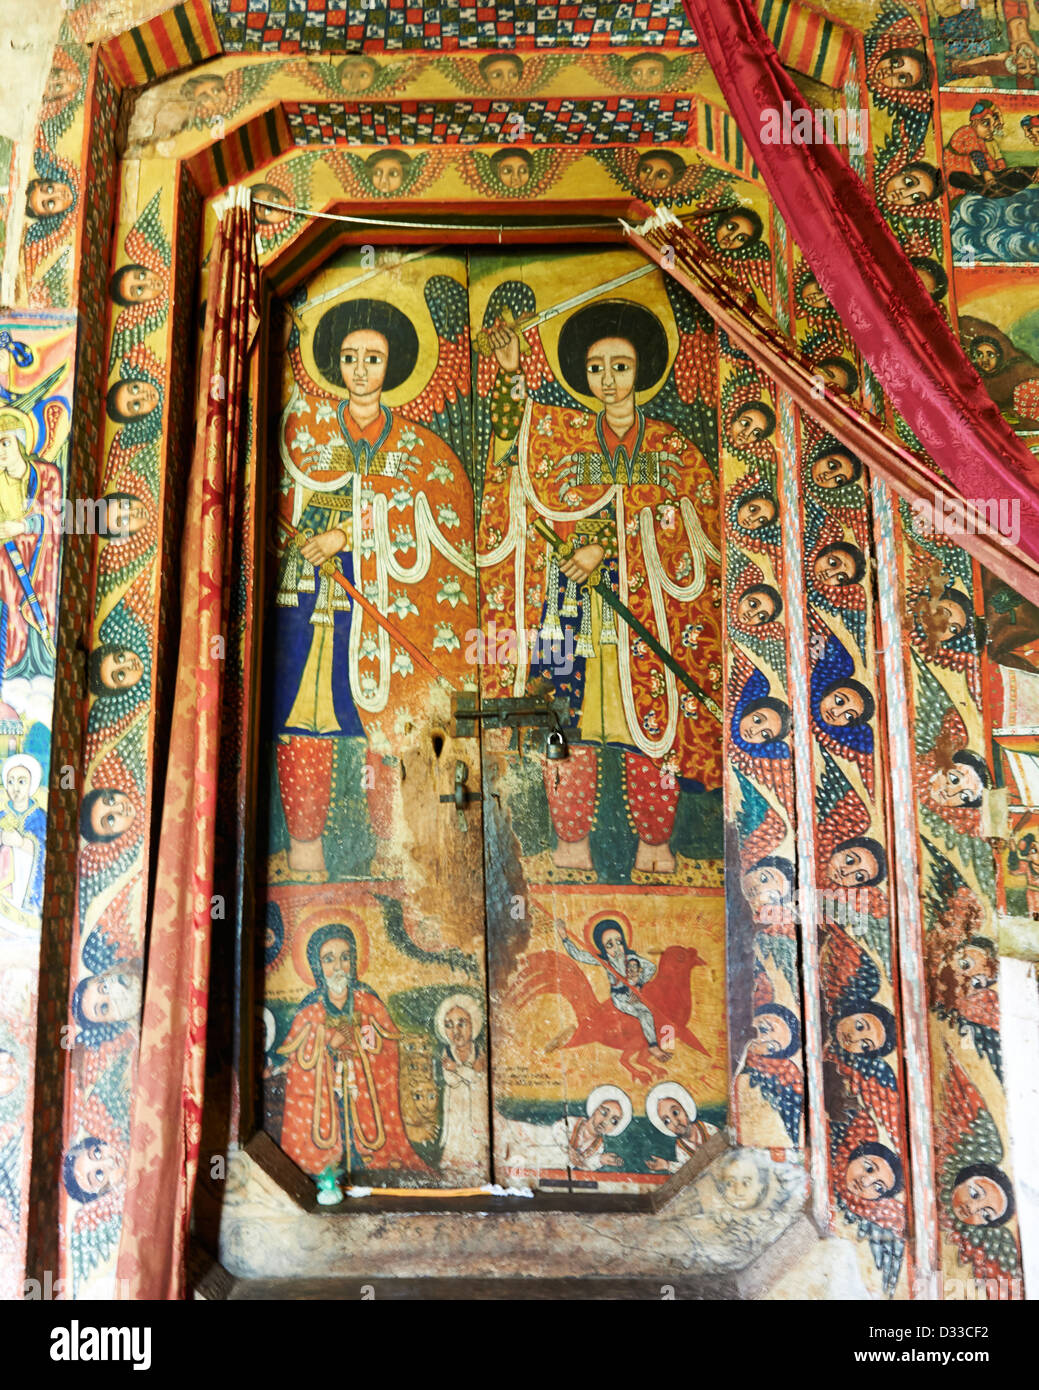 Paintings at The Ura Kidane Mihret, an Ethiopian Orthodox Church located on the Zege Peninsula in Lake Tana, Ethiopia. - Stock Image